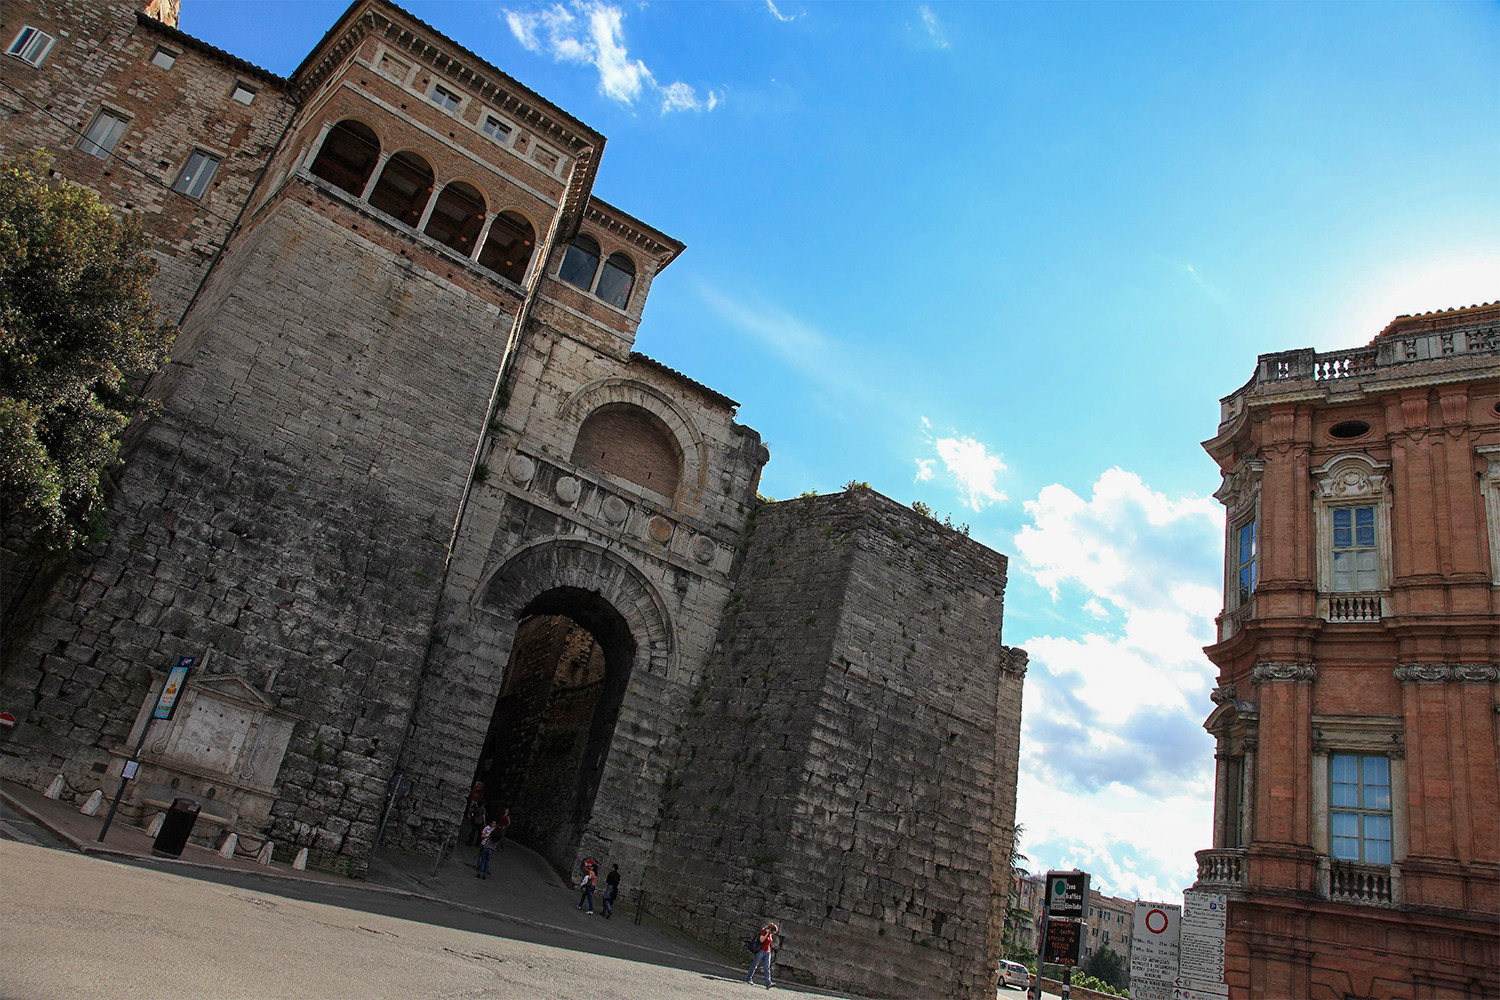 Arco Etrusco di Perugia,<br>photo by Michele Tortoioli